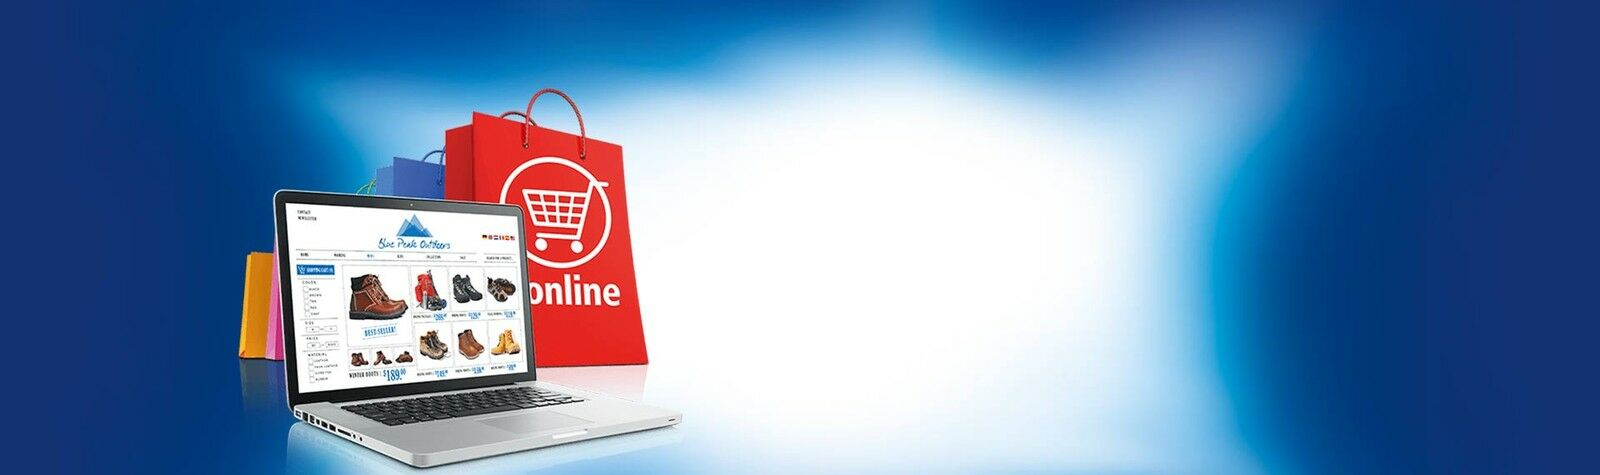 We Sell it All Online